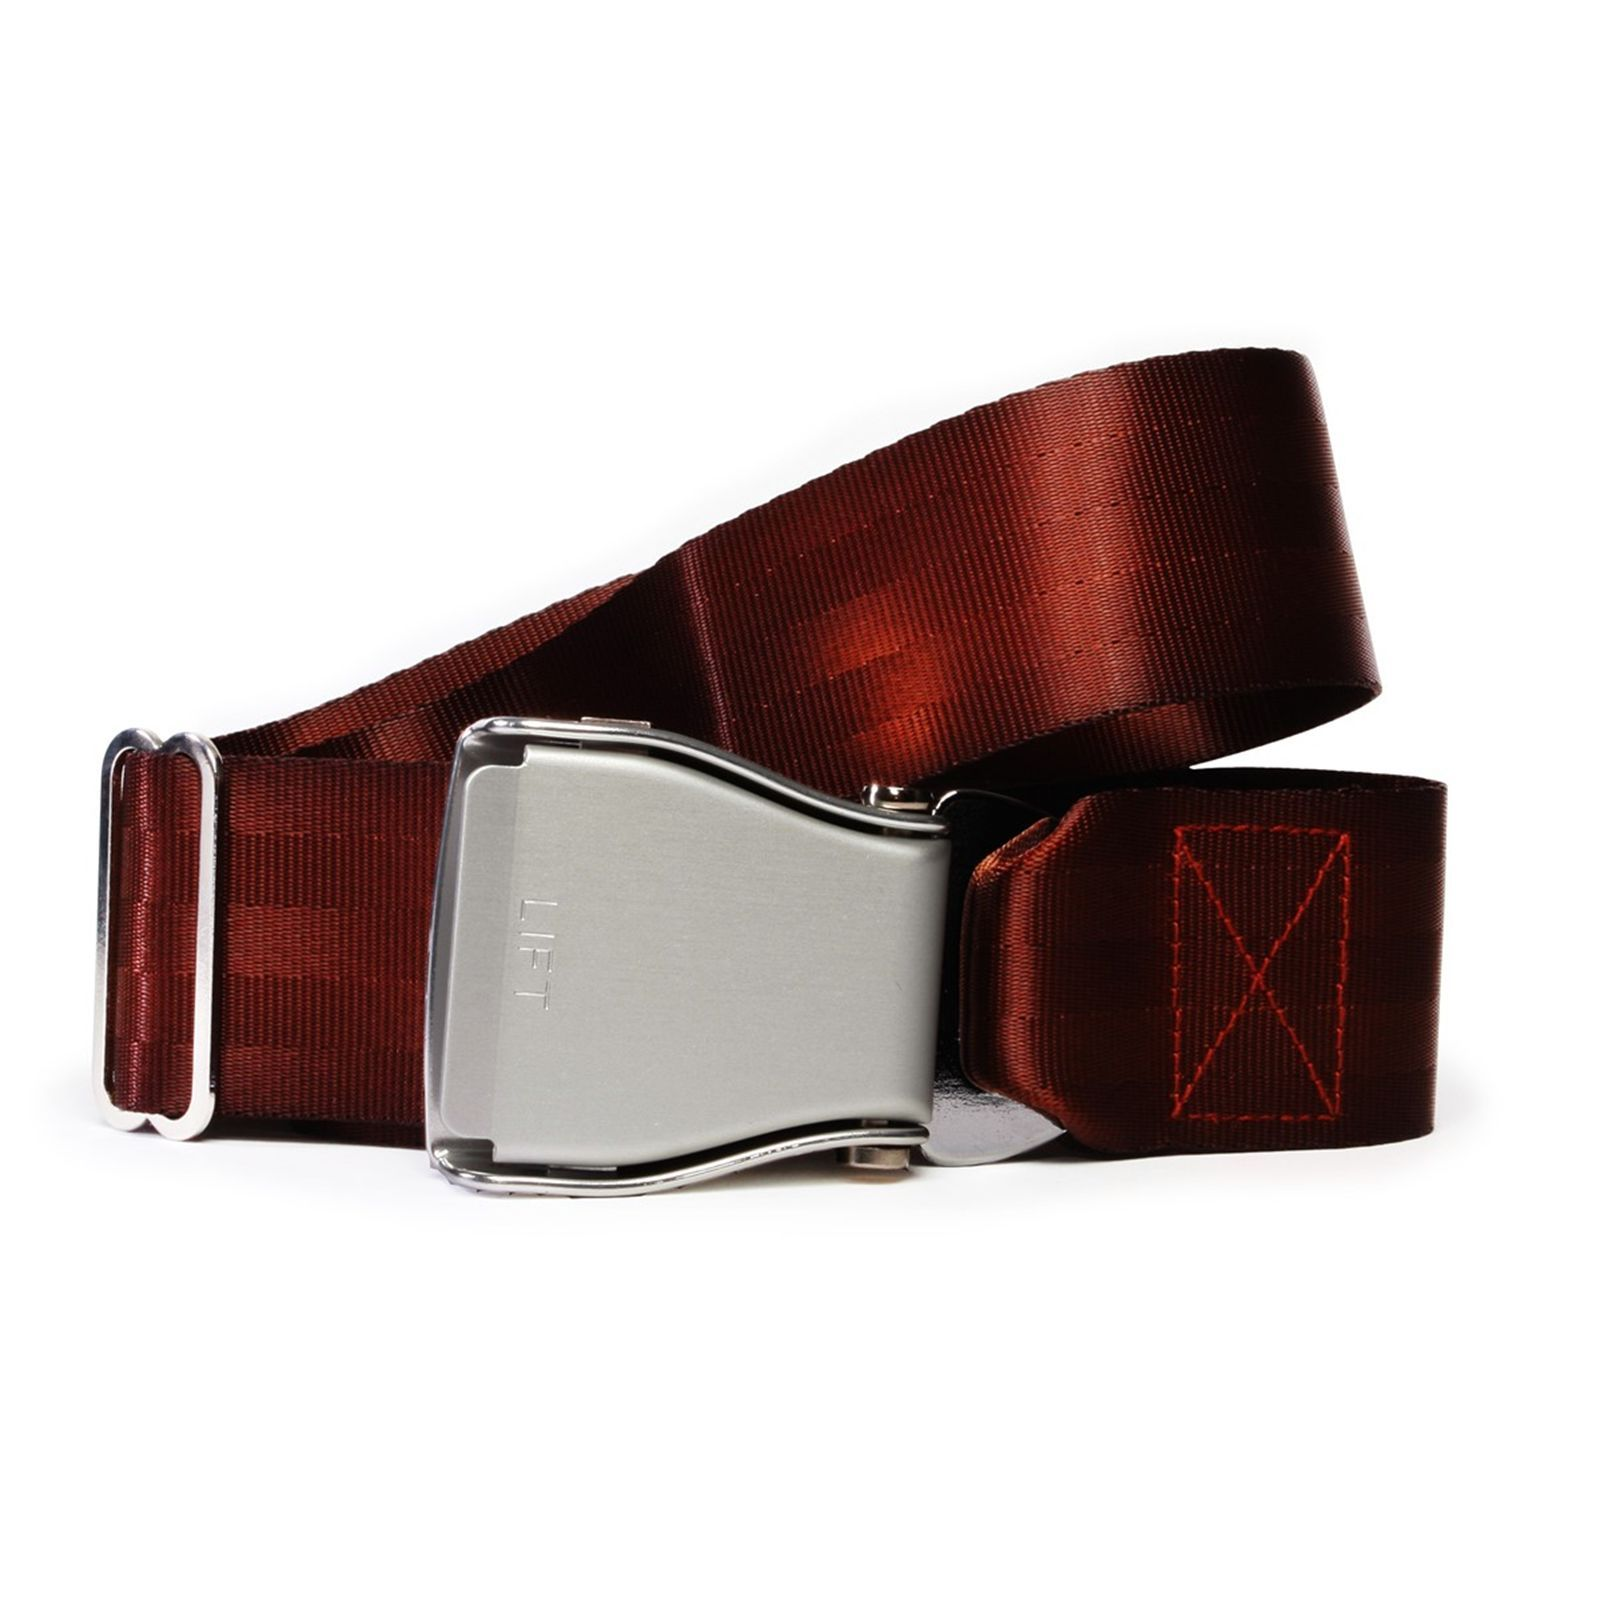 00c200a5e5cb Fly Belts Ceinture d Avion - Ceinture - marron   BrandAlley